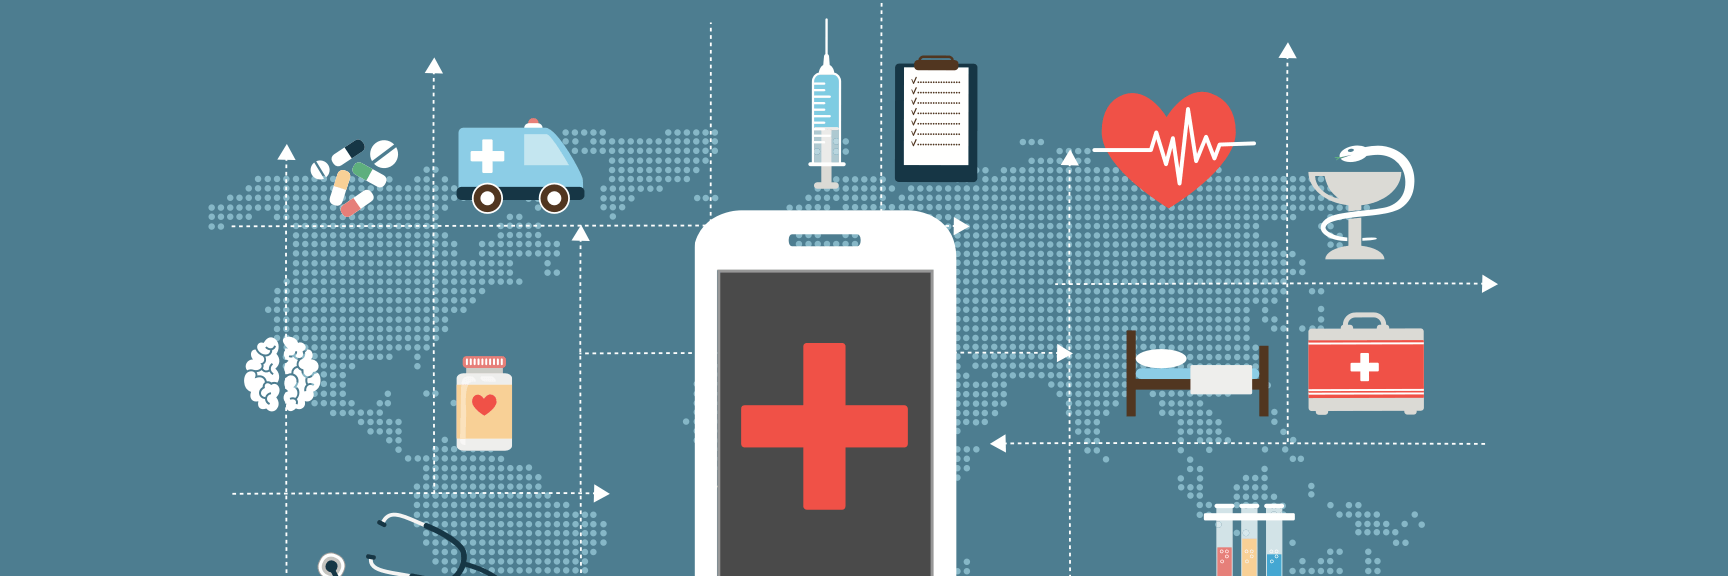 digital health: past and future